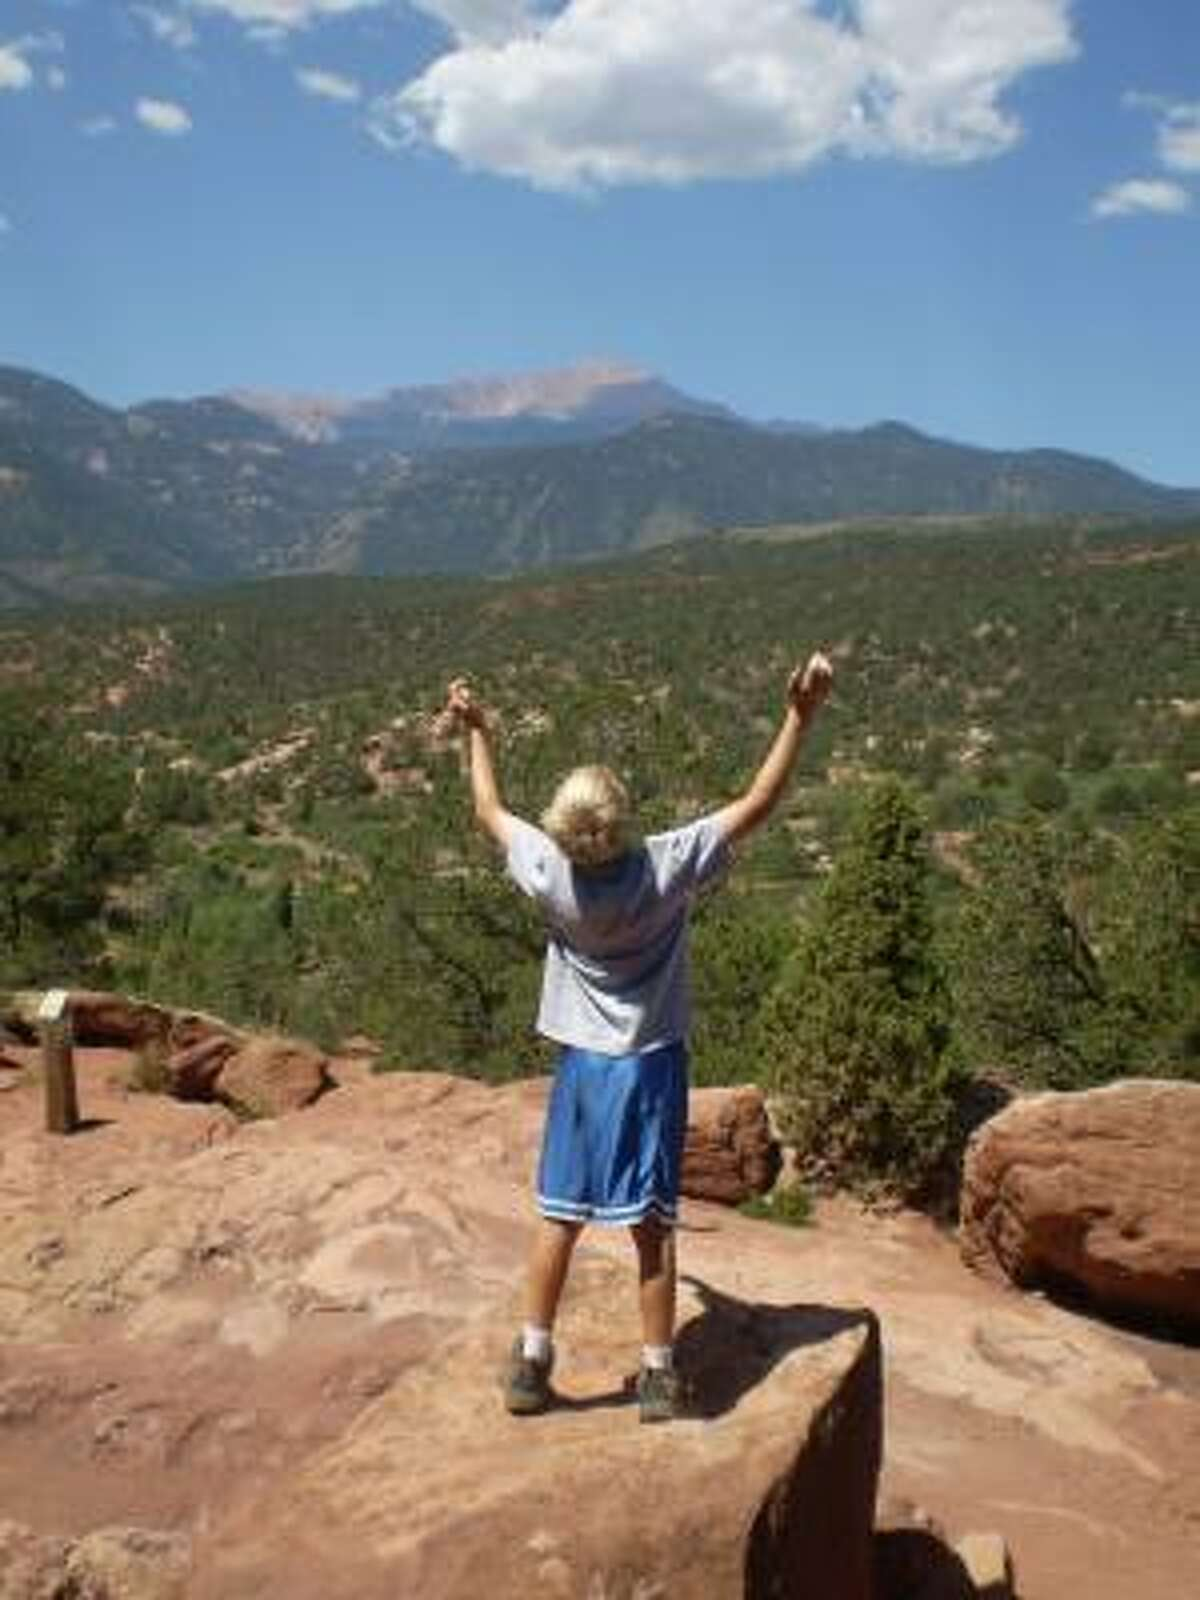 11-year-old hands, giving God ALL the glory at Garden of the Gods in Colorado. For more information on the KSBJ